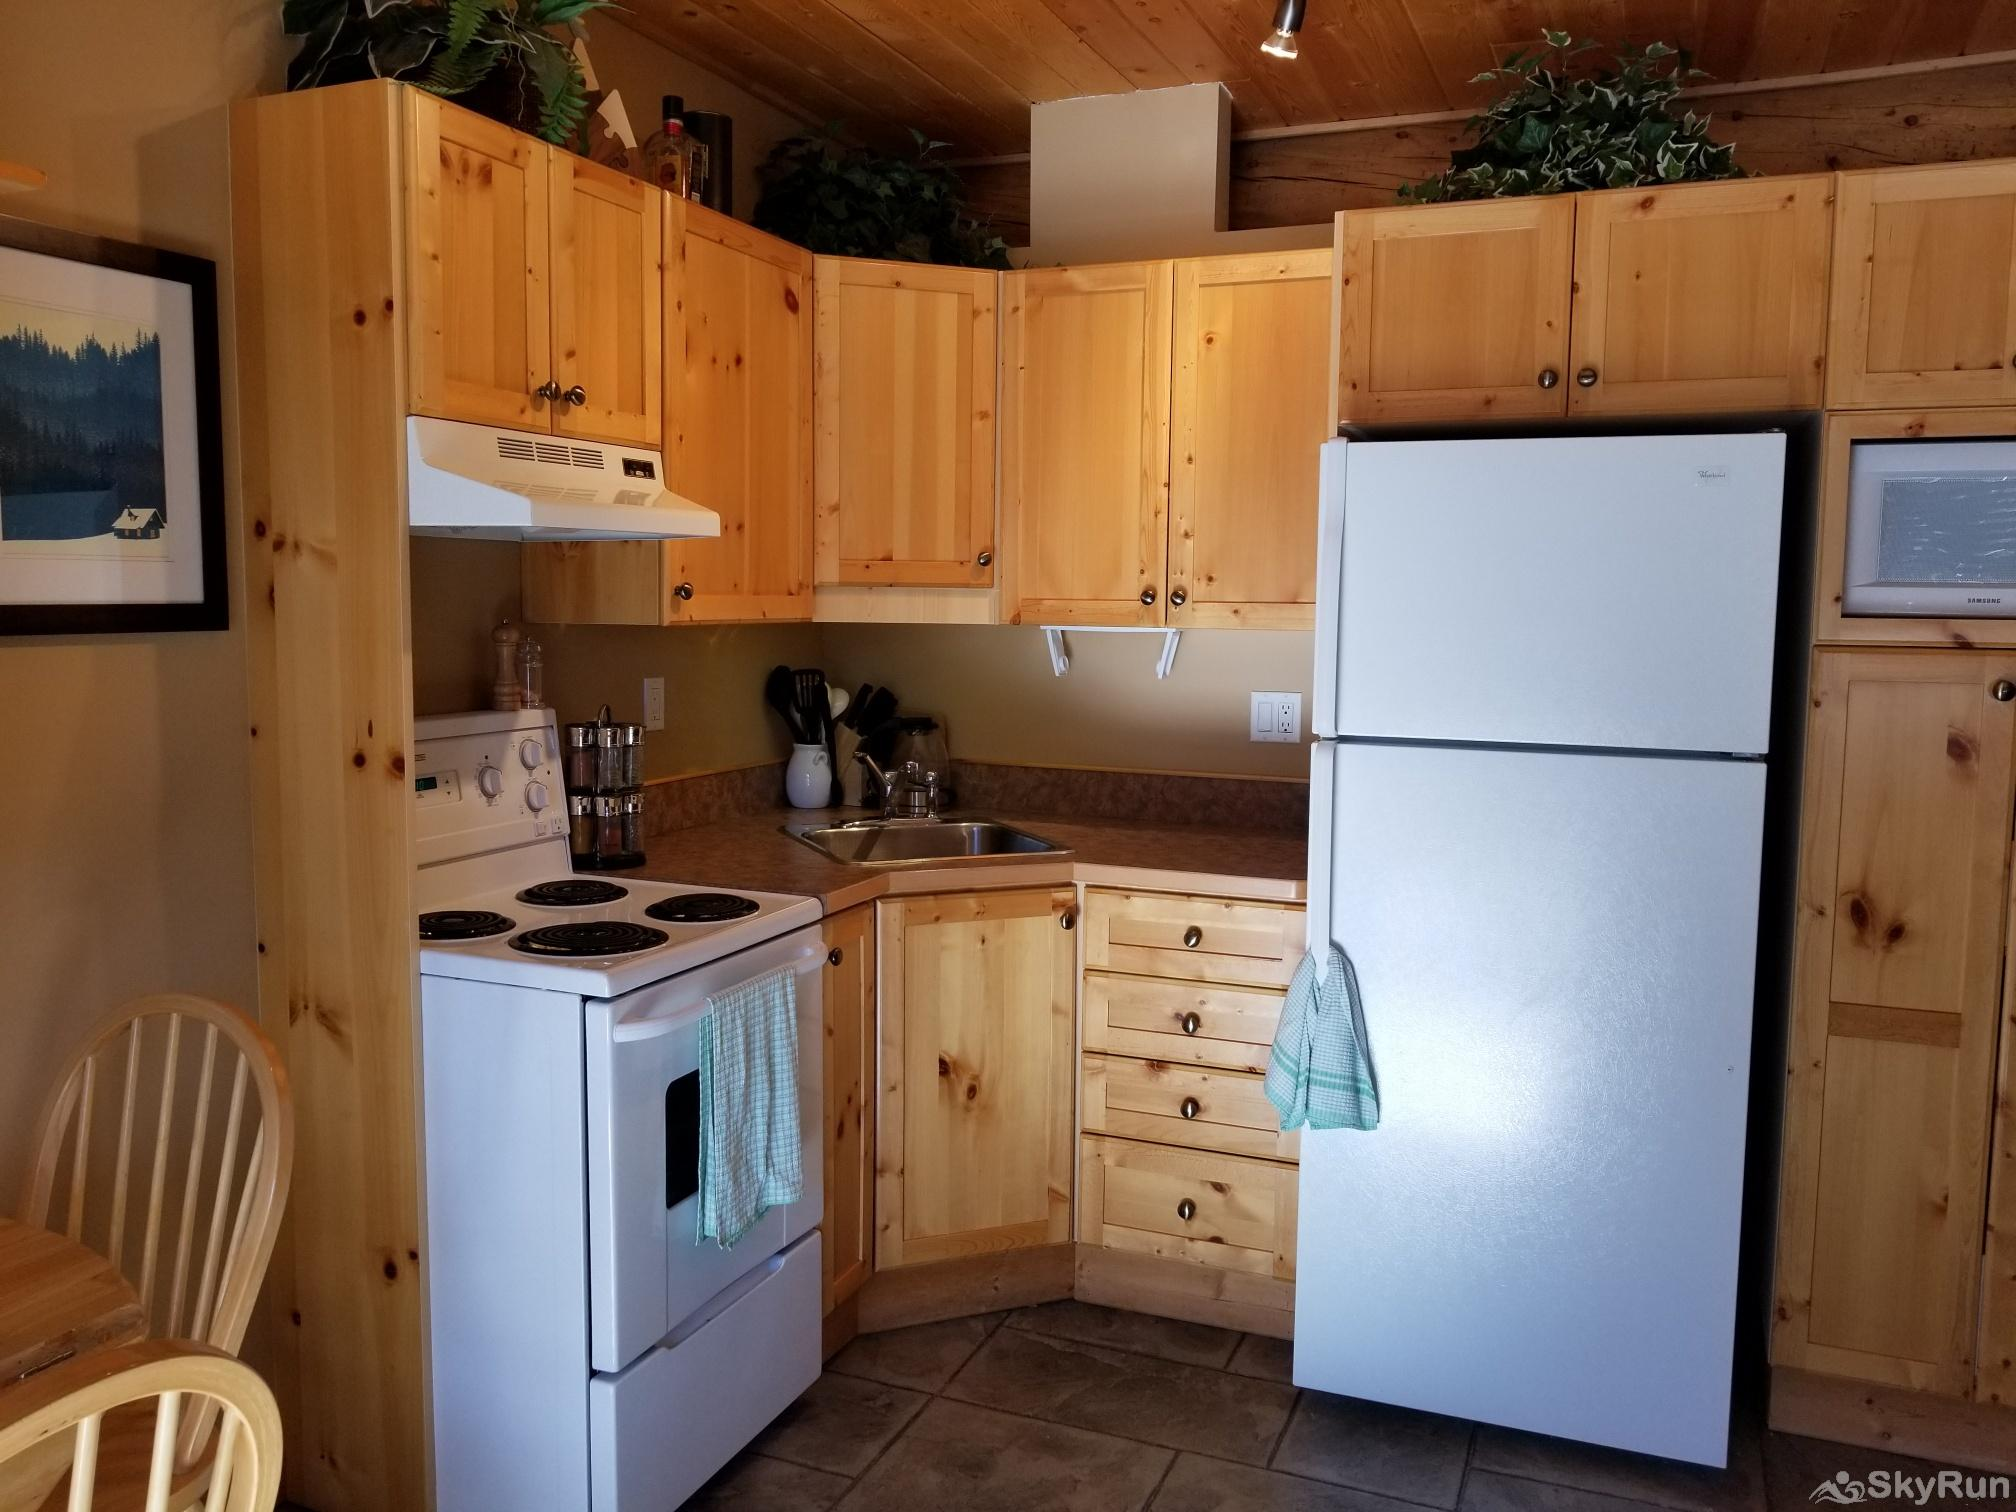 Silver Bullet 1 bedroom with hot tub